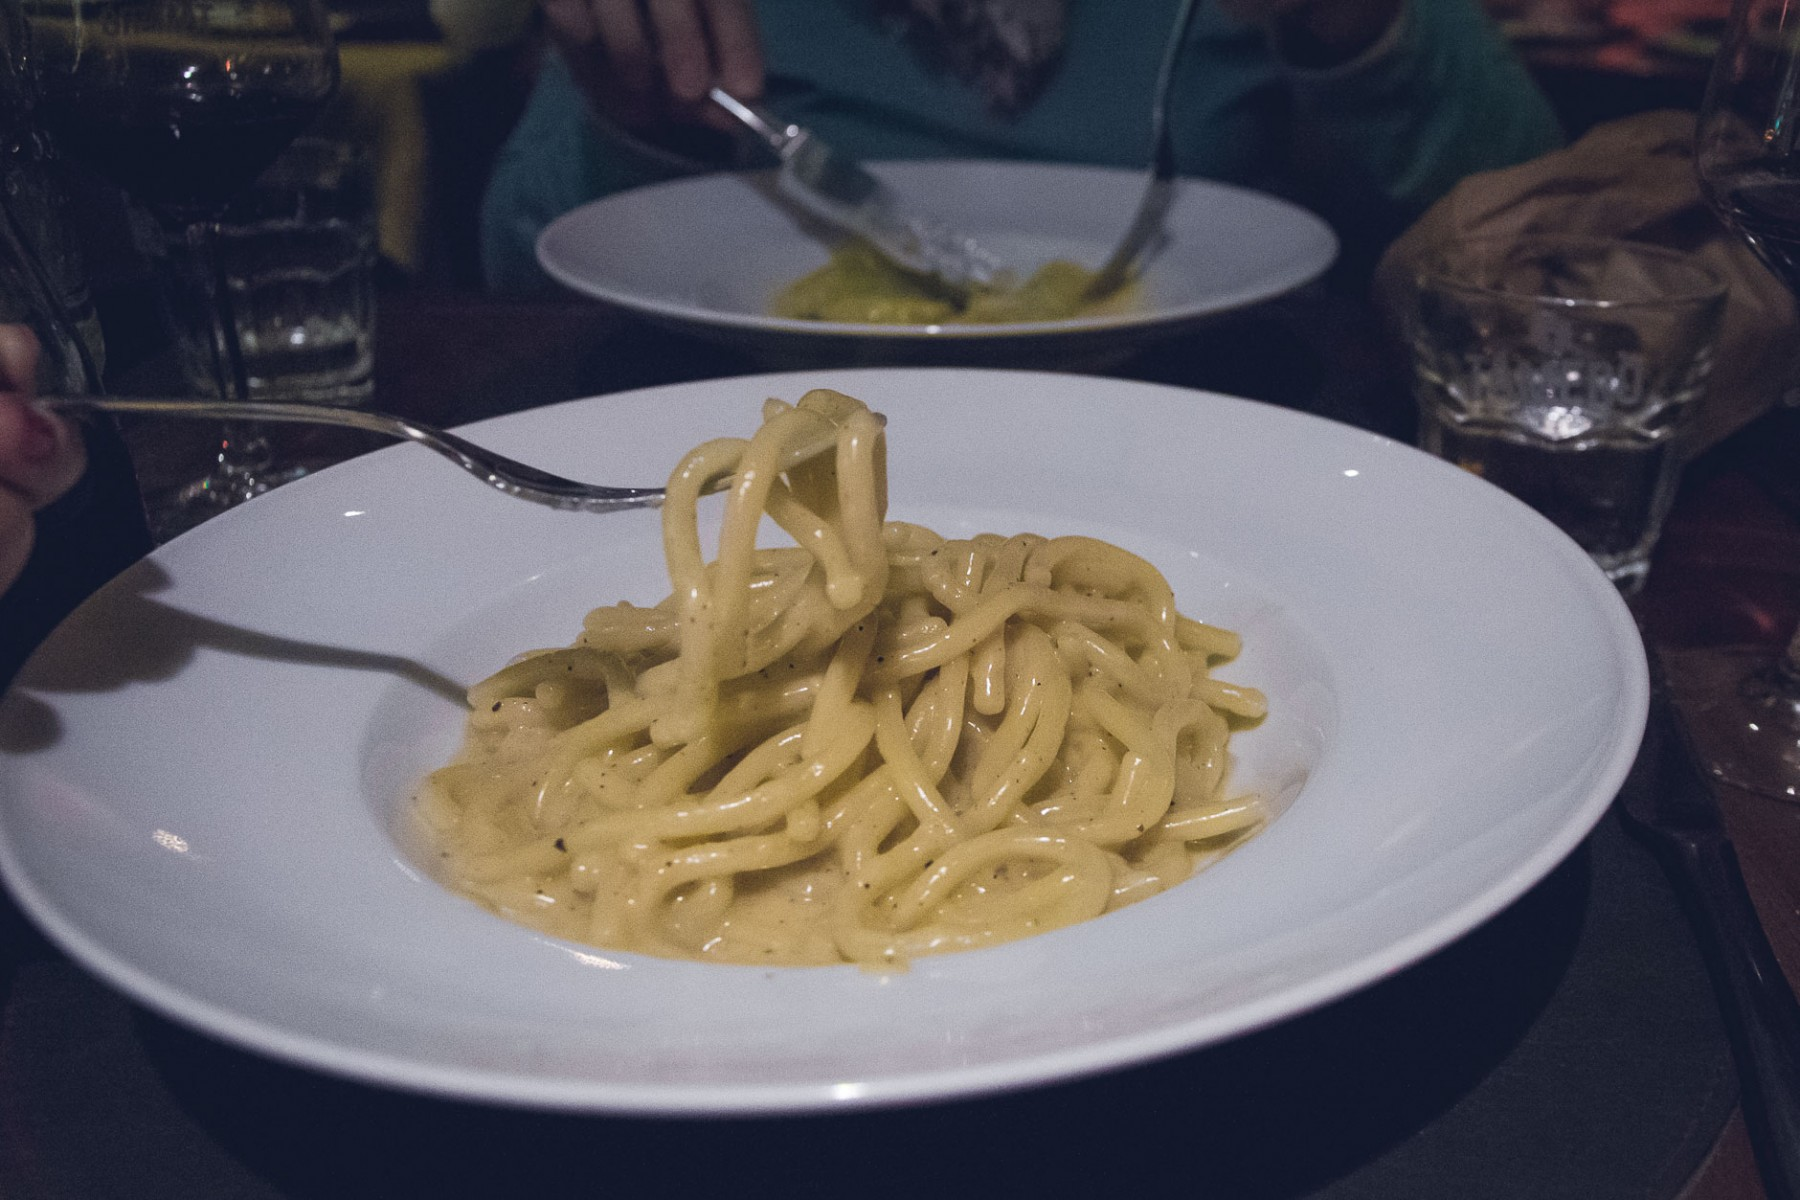 Pasta at Tamerò in Florence, Italy